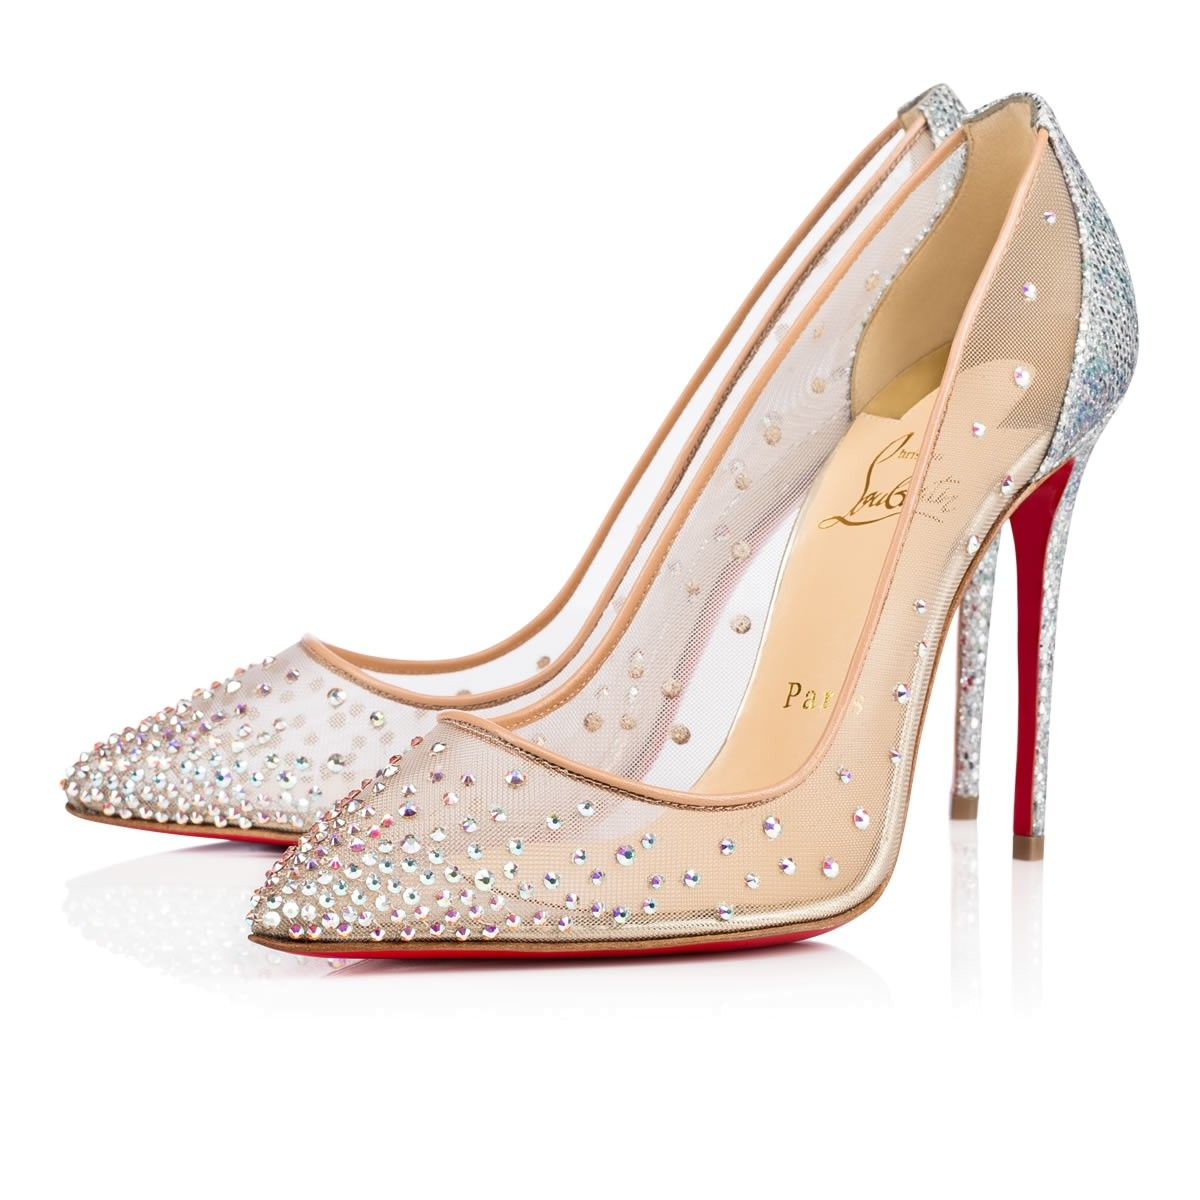 christian louboutin follies strass silver